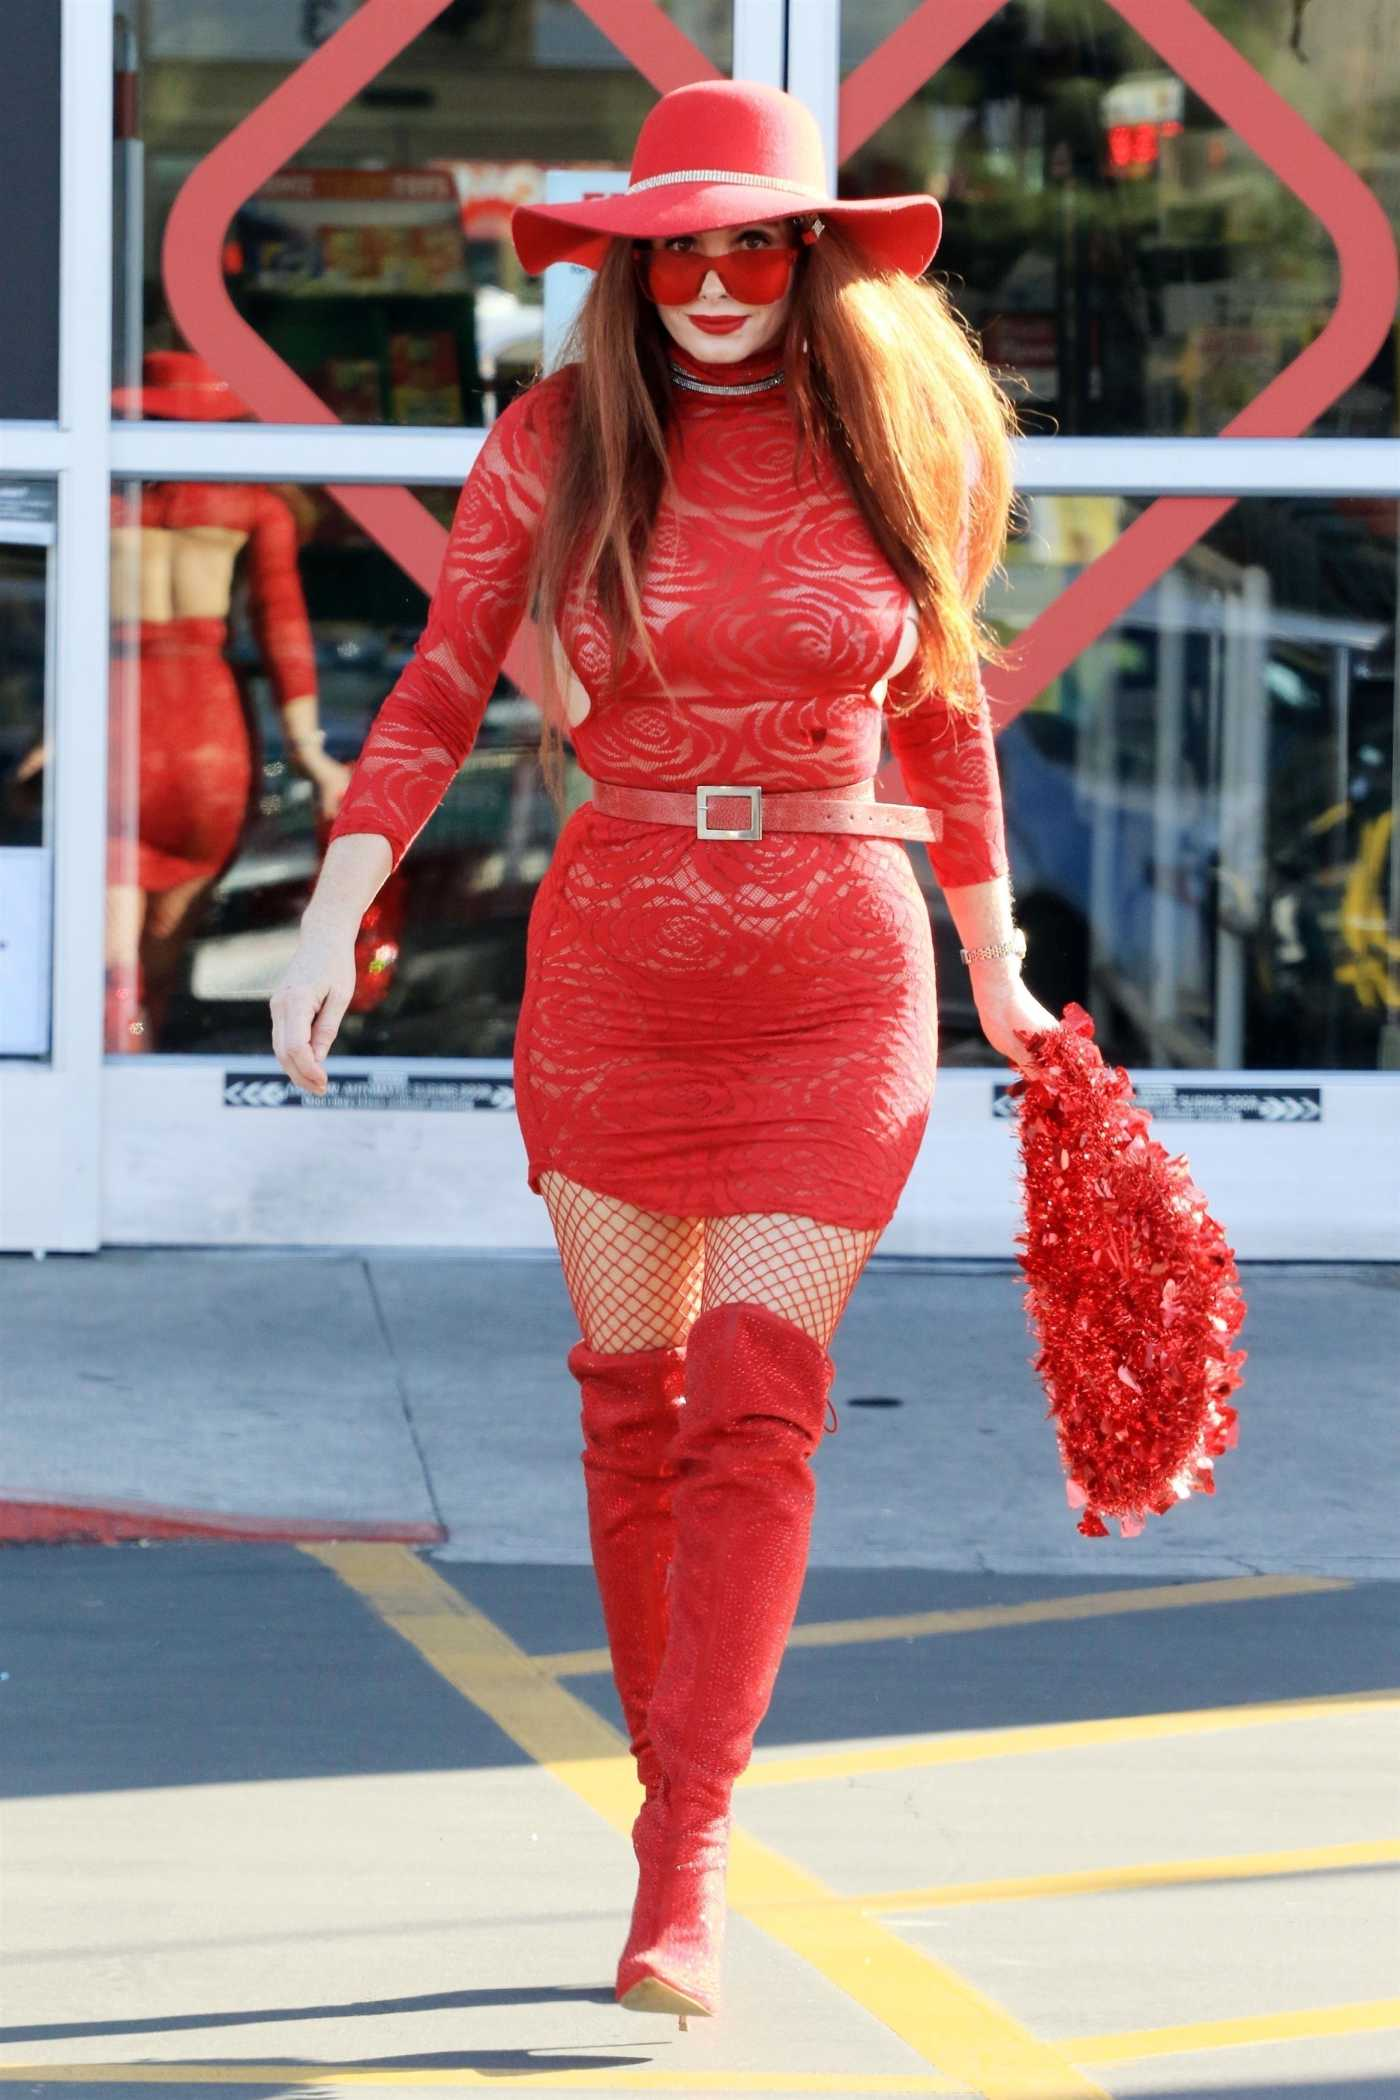 Phoebe Price in a Red Mini Dress Arrives at CVS Pharmacy in Los Angeles 02/12/2021